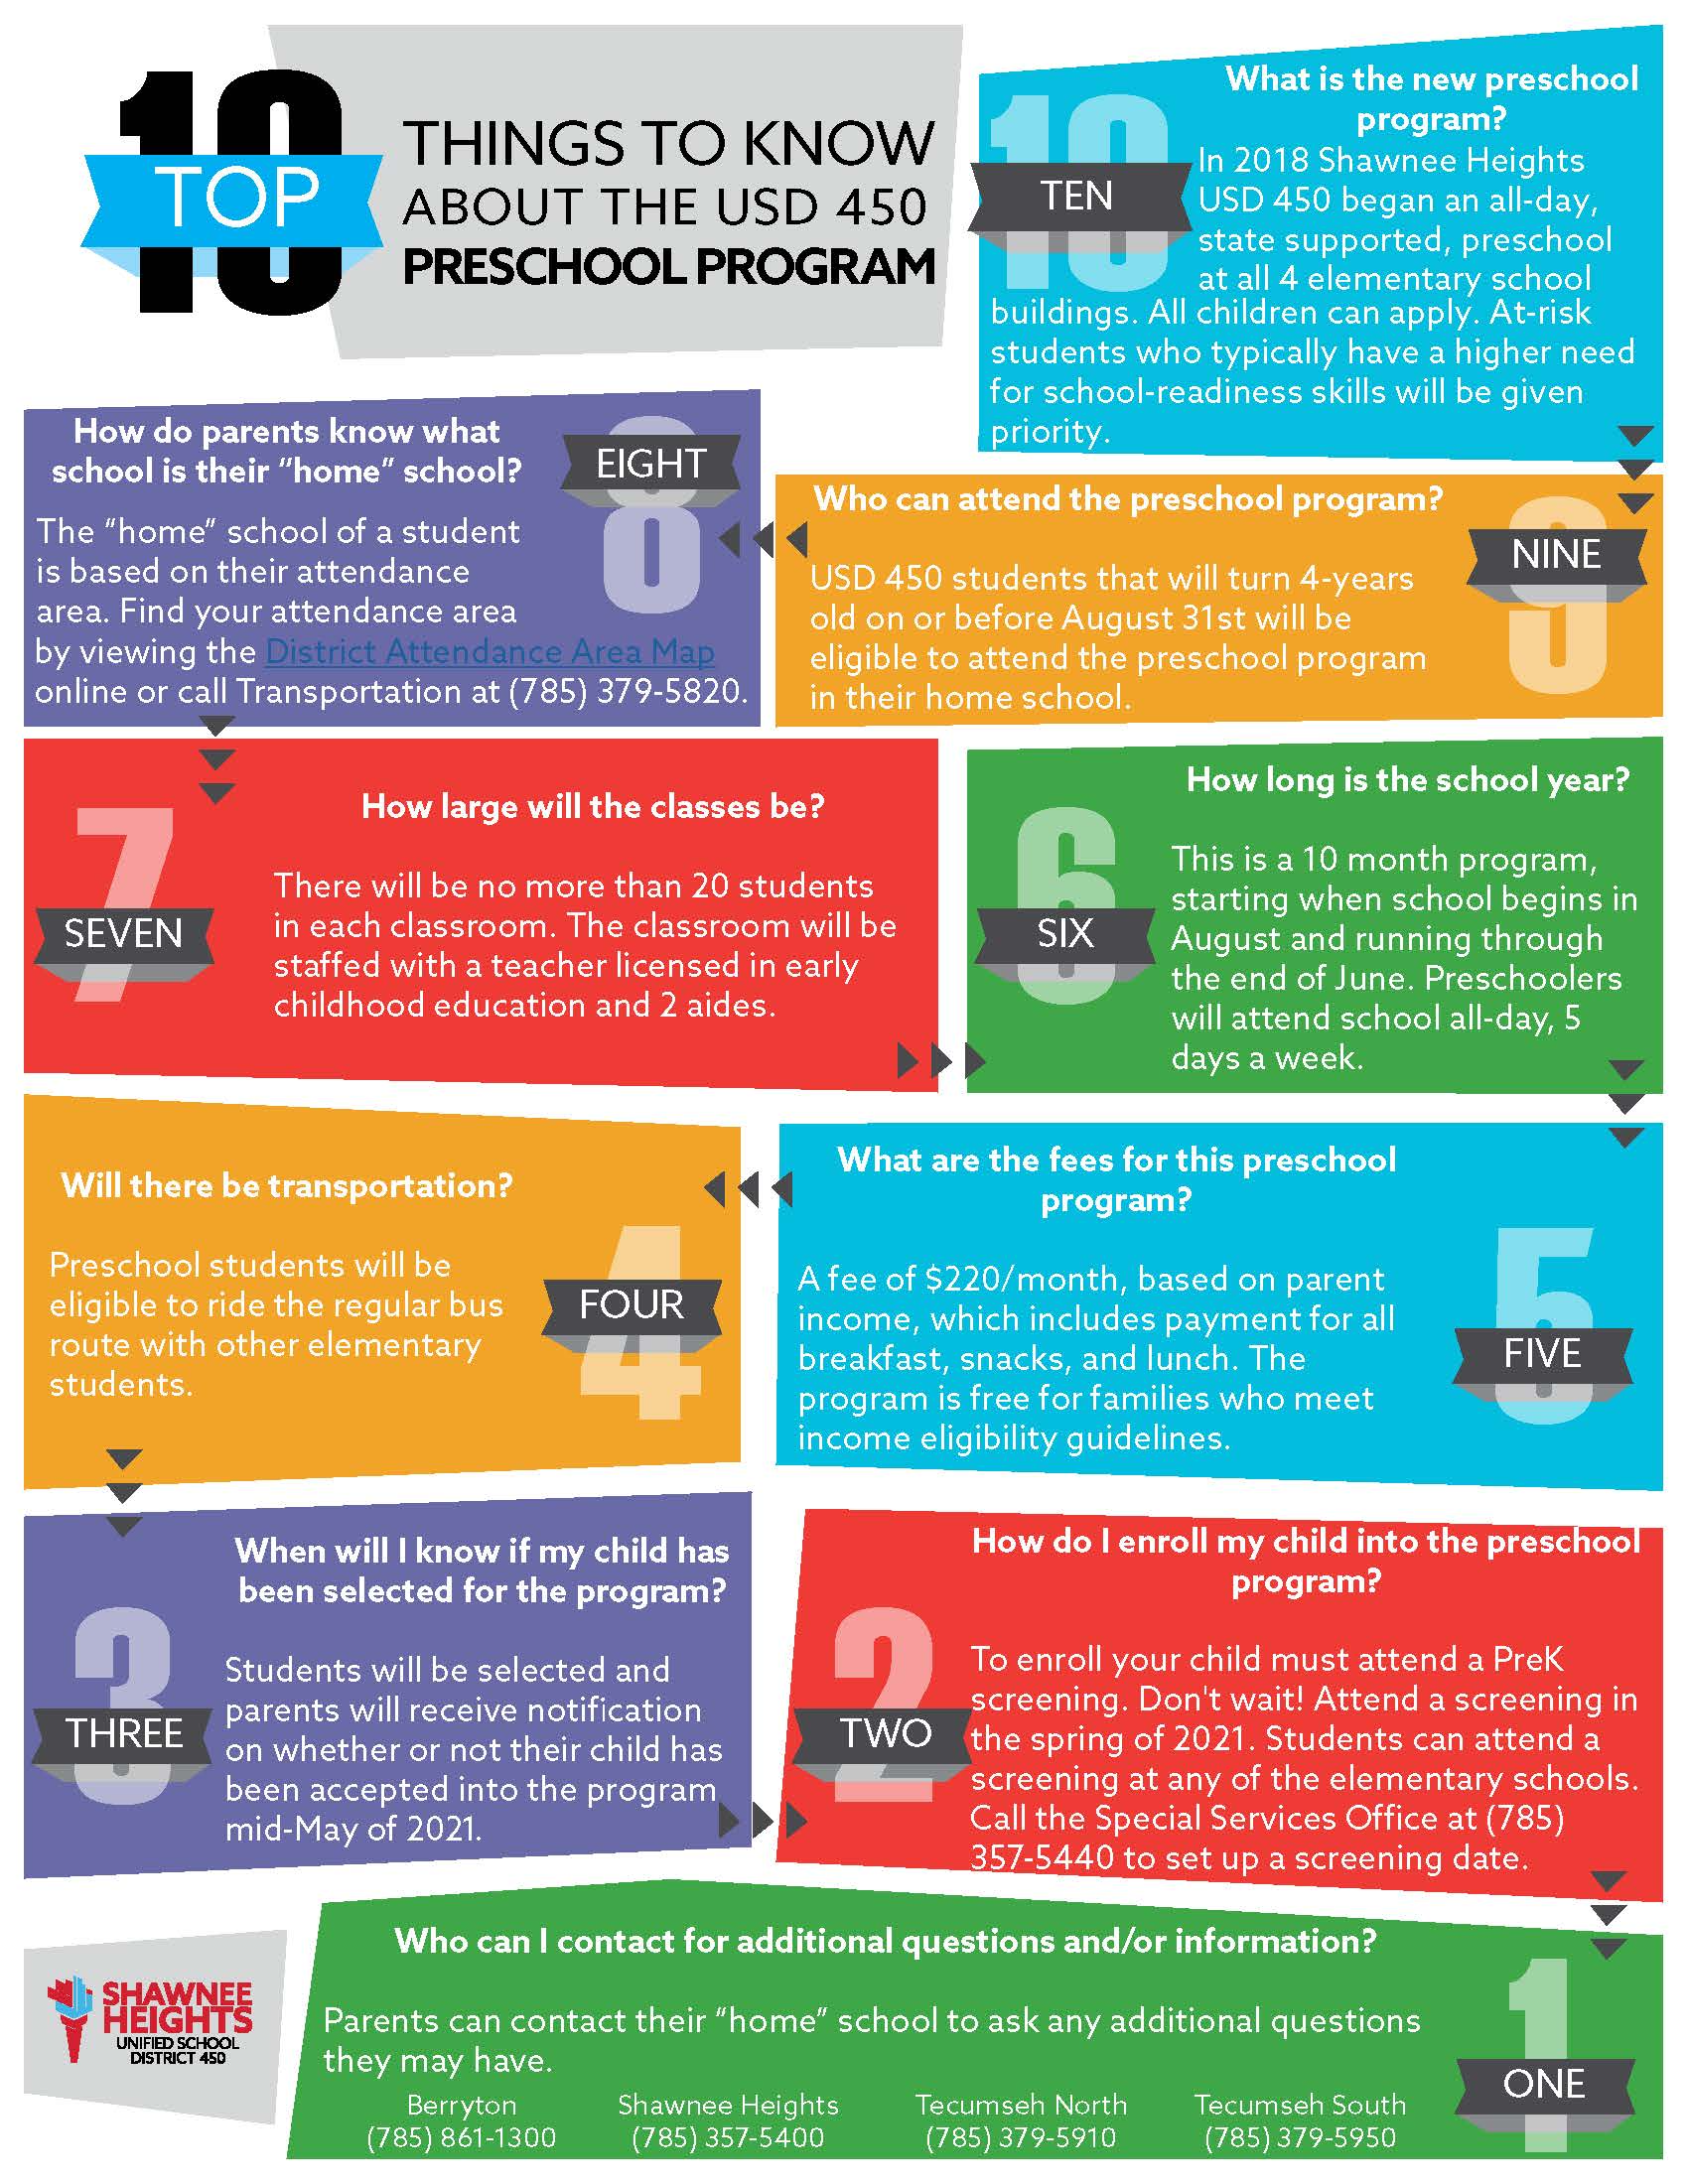 Top 10 things to Know about the USD 450 Preschool Program